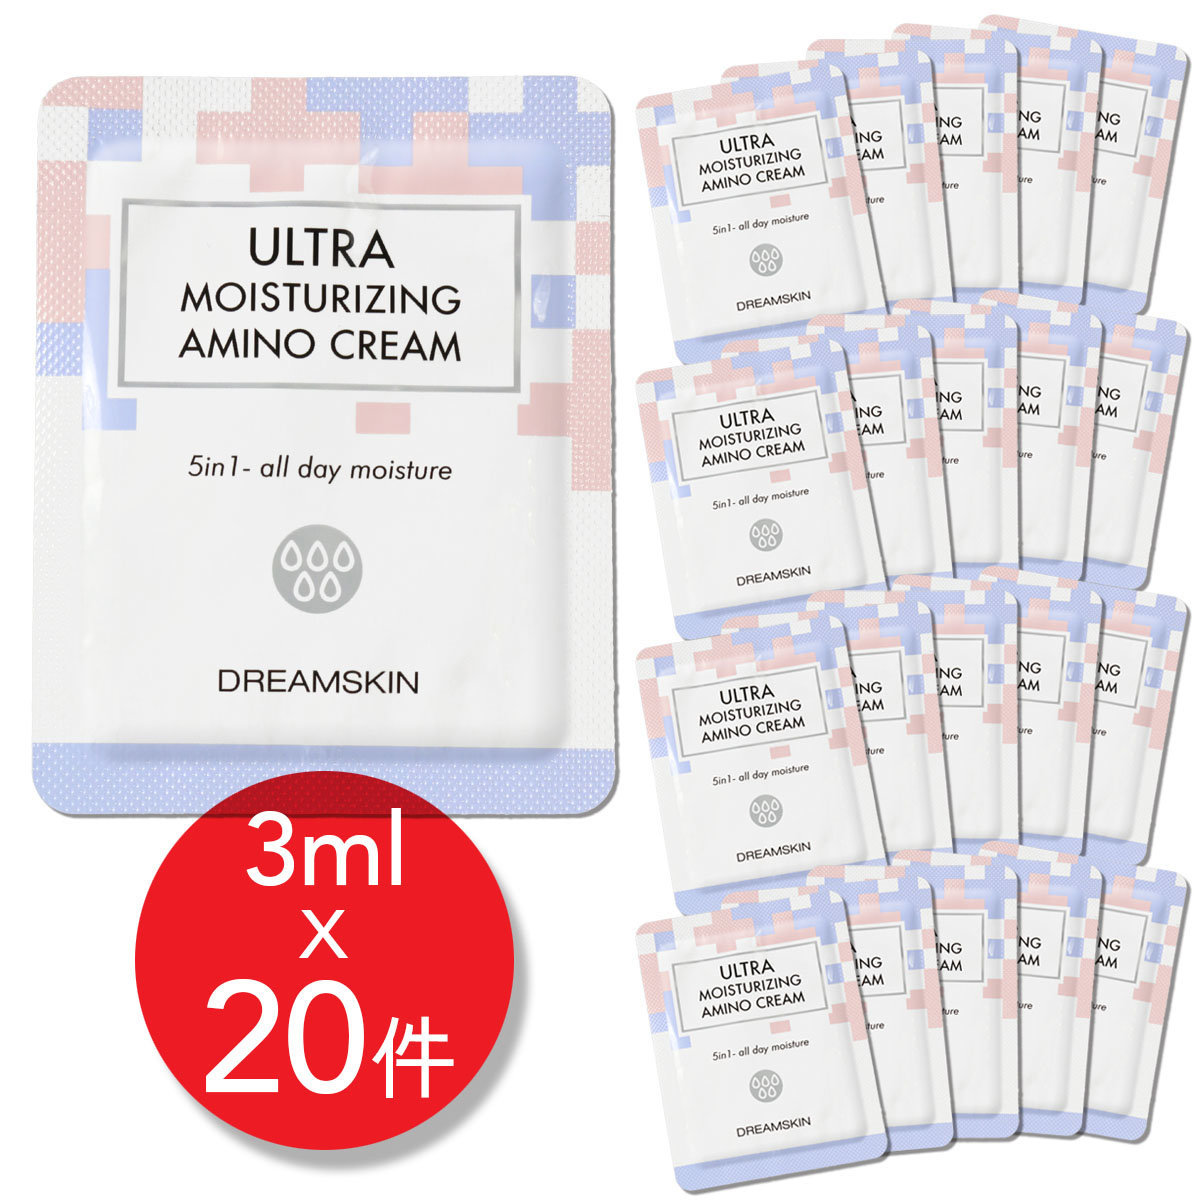 Ultra Moisturizing Amino Cream Sample Set (20pcs)